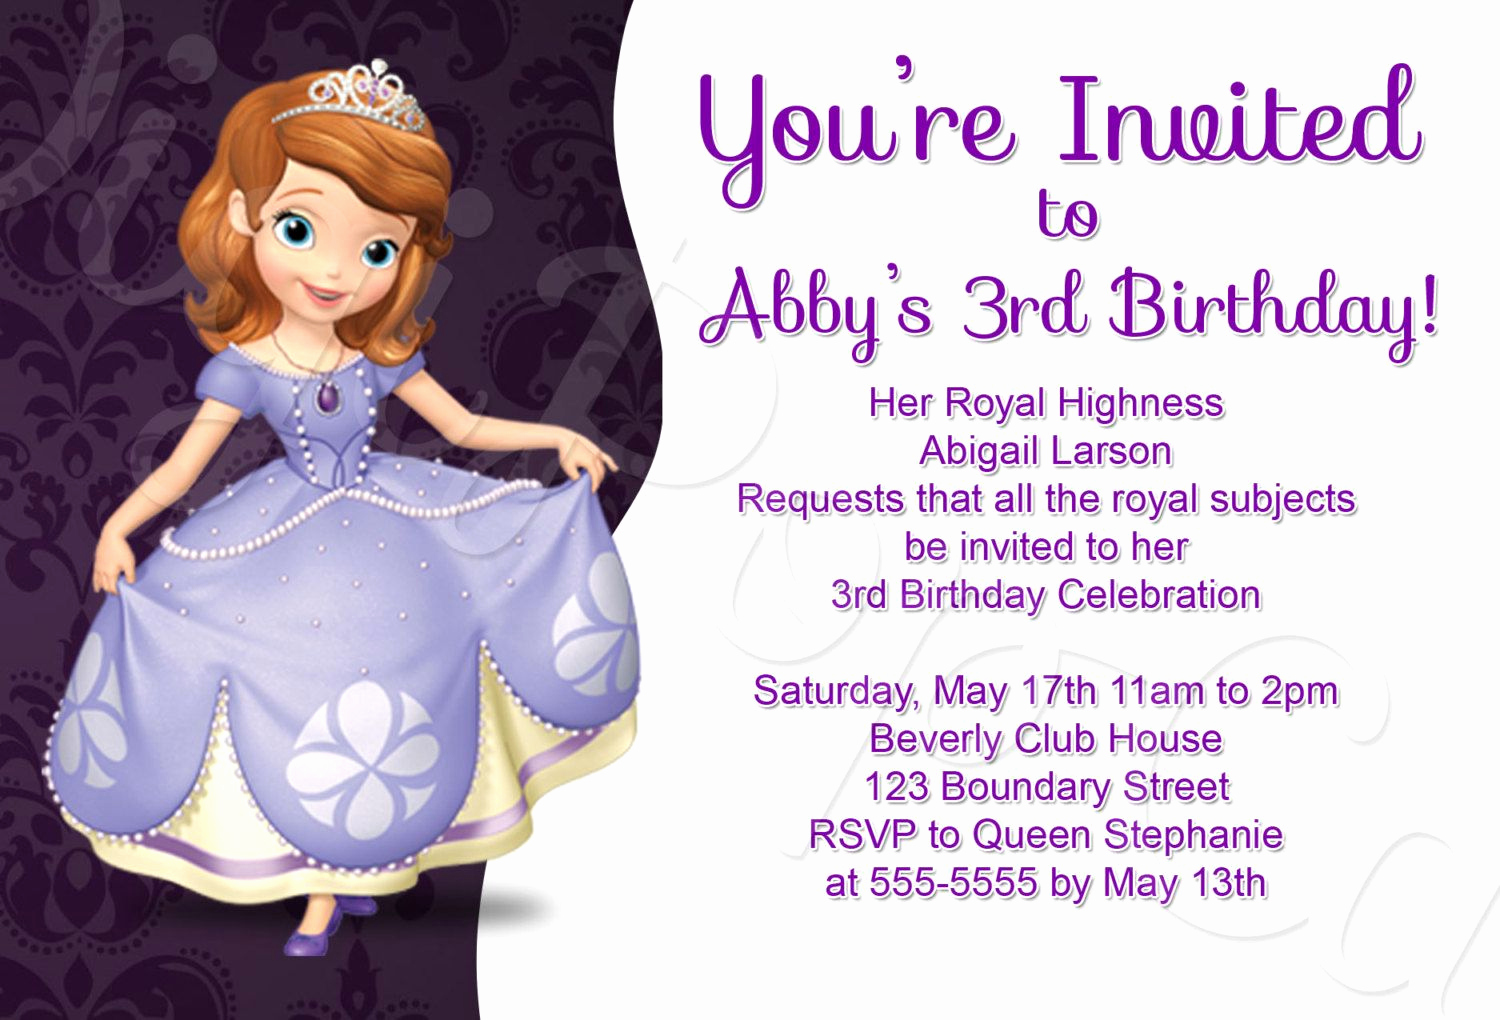 Sofia the First Invitation Templates Elegant Princess sofia Birthday Invitation Template Invitation